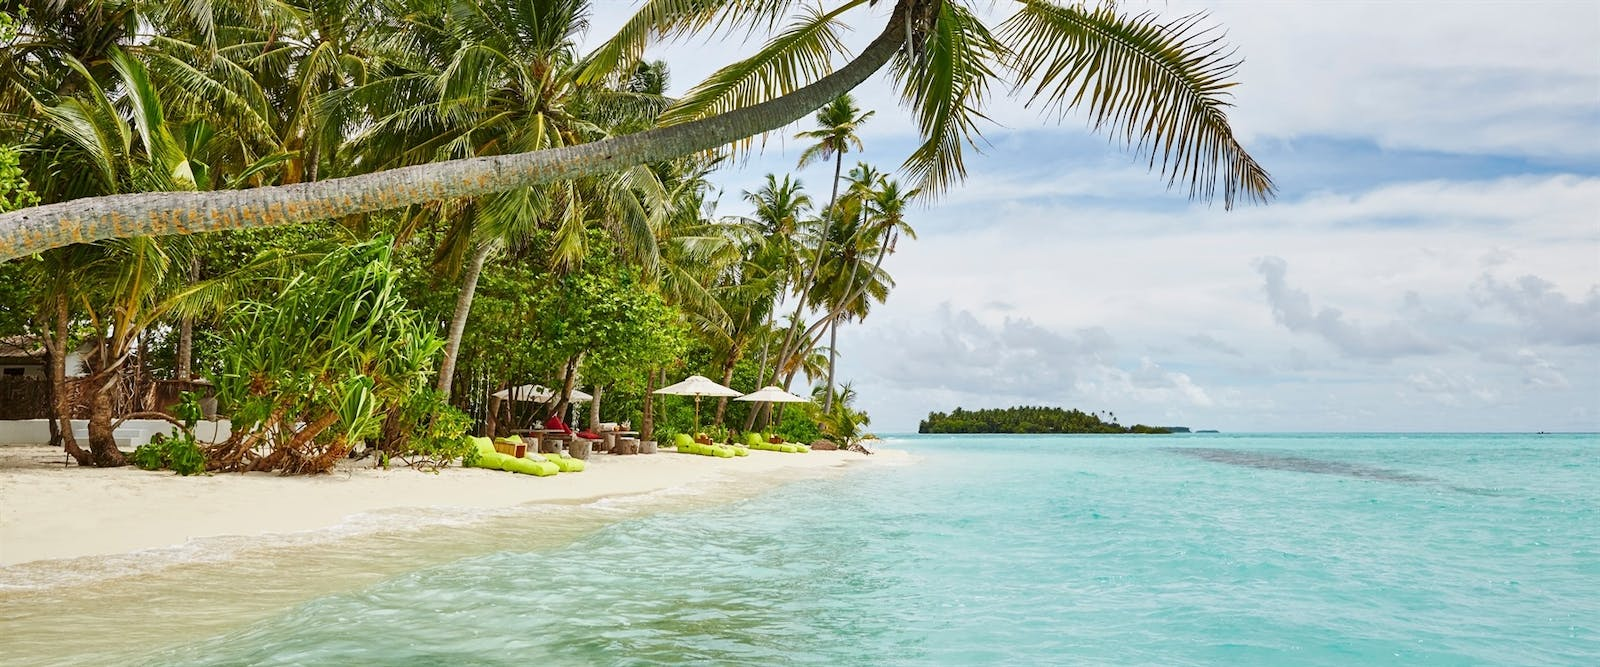 Private Picnic Island at COMO Maalifushi, Maldives, Indian Ocean